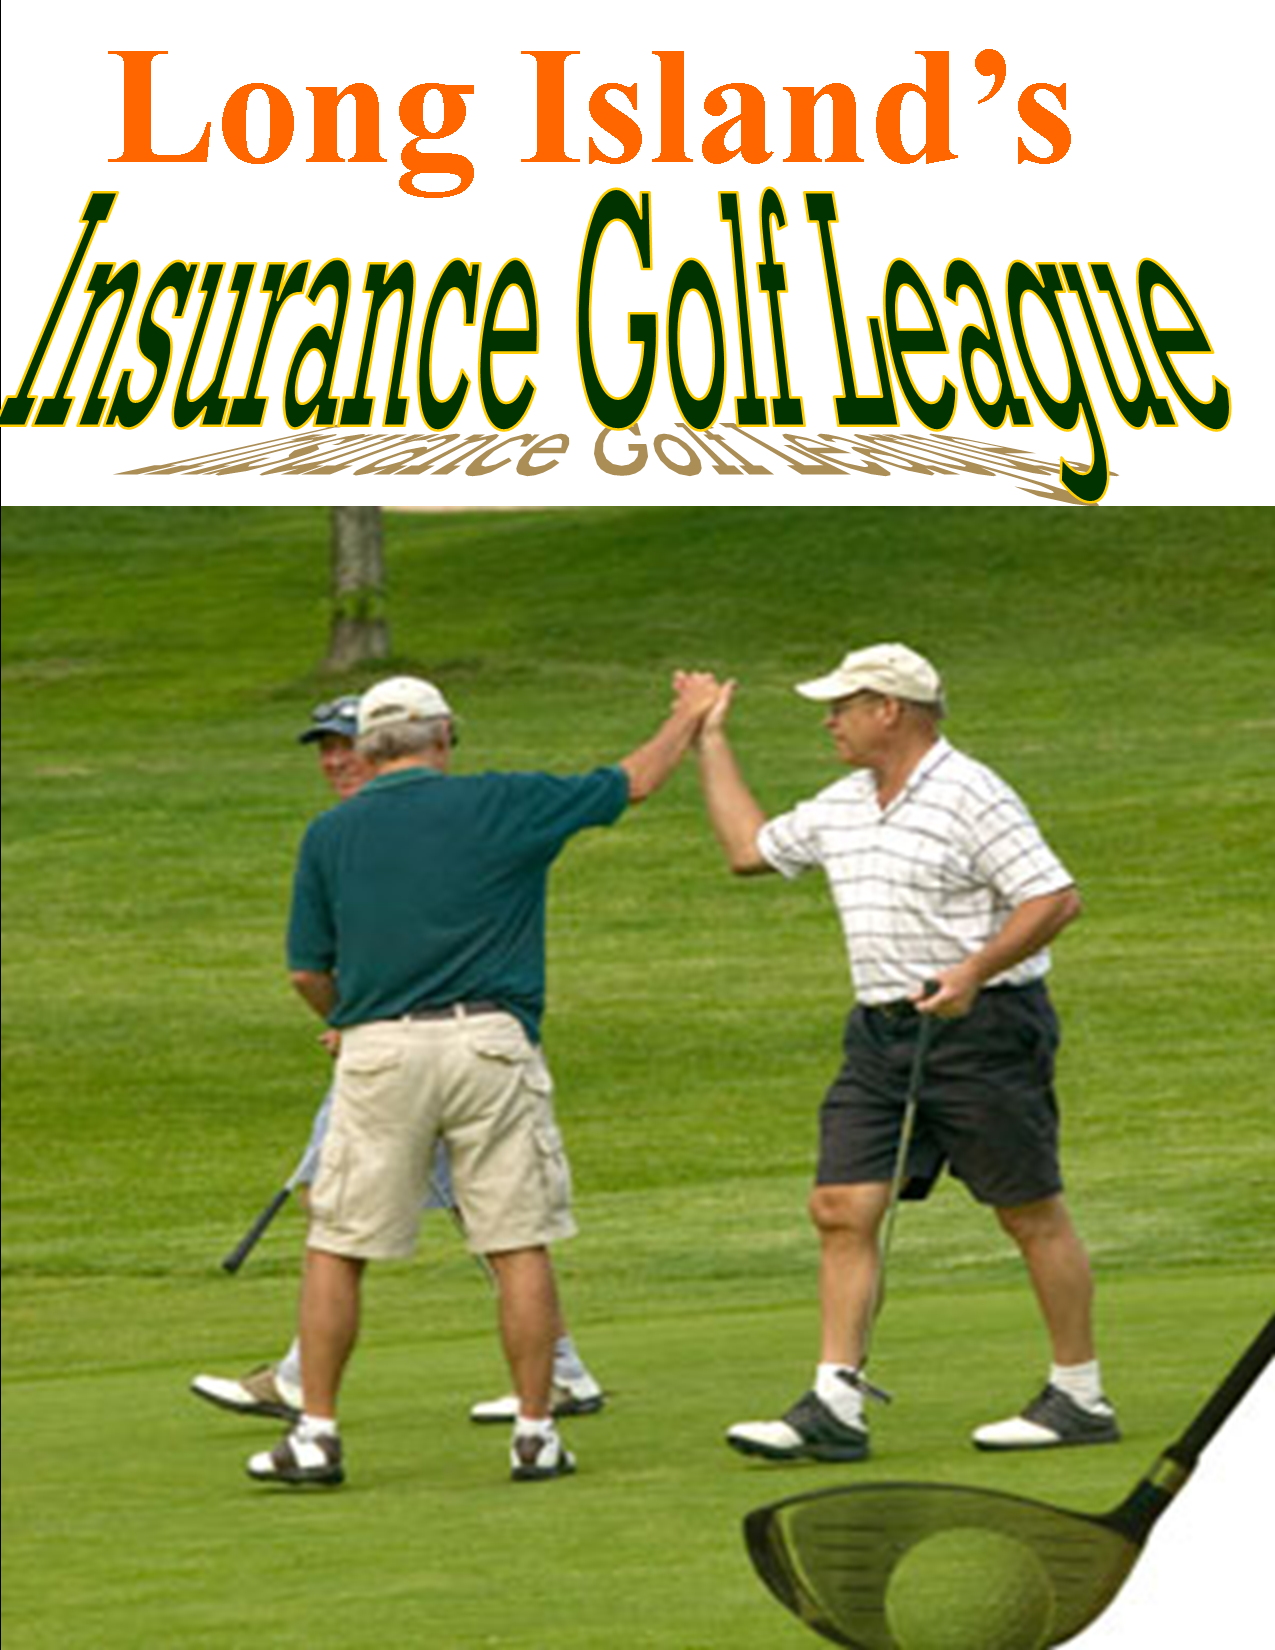 golf,golf league,insurance,long island,long island insurance golf league,long island golf,insurance league